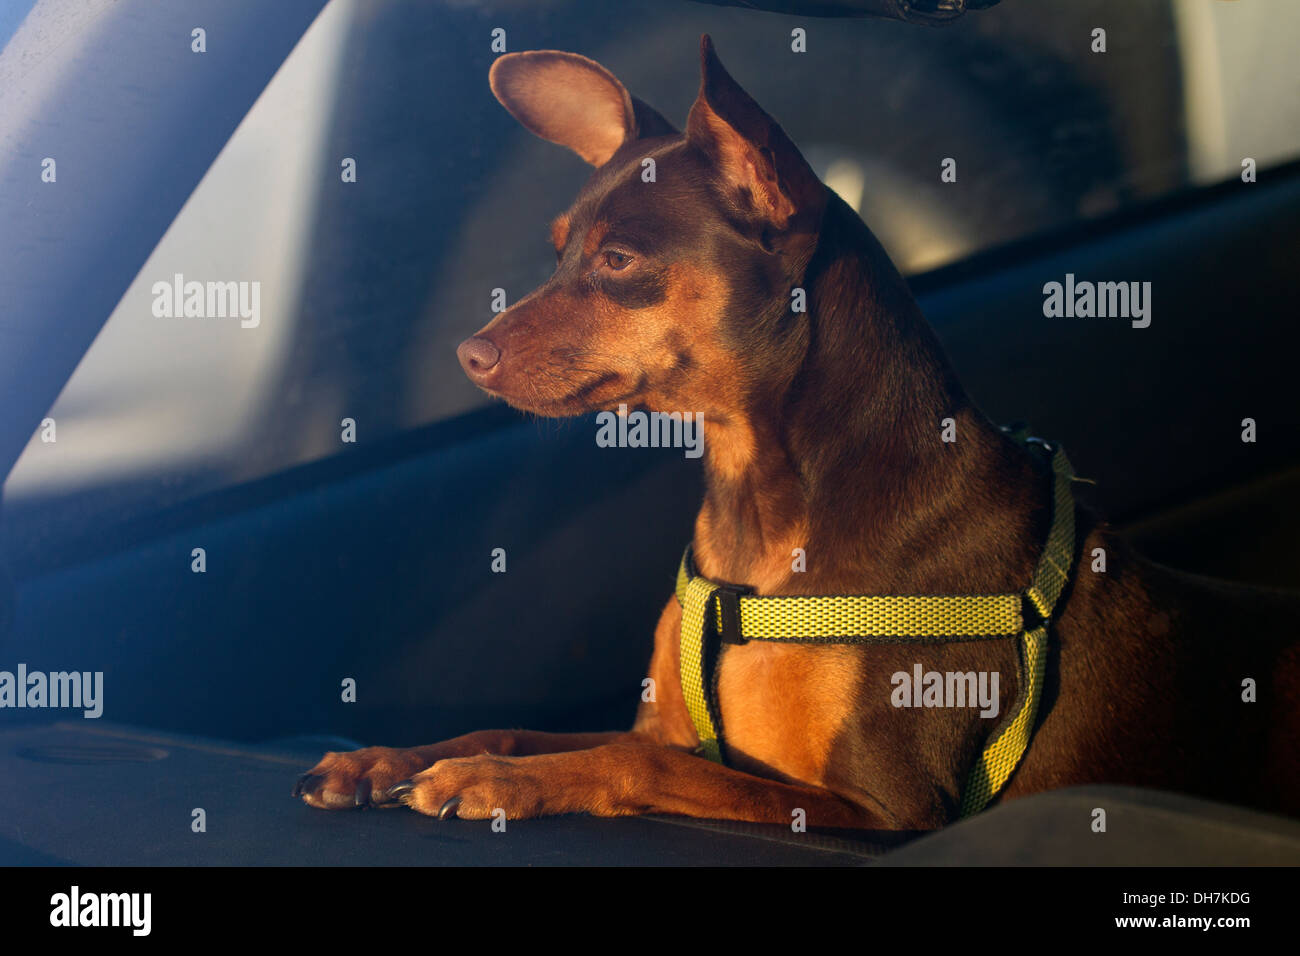 Brown MinPin Looking out of Car Windshield - Stock Image